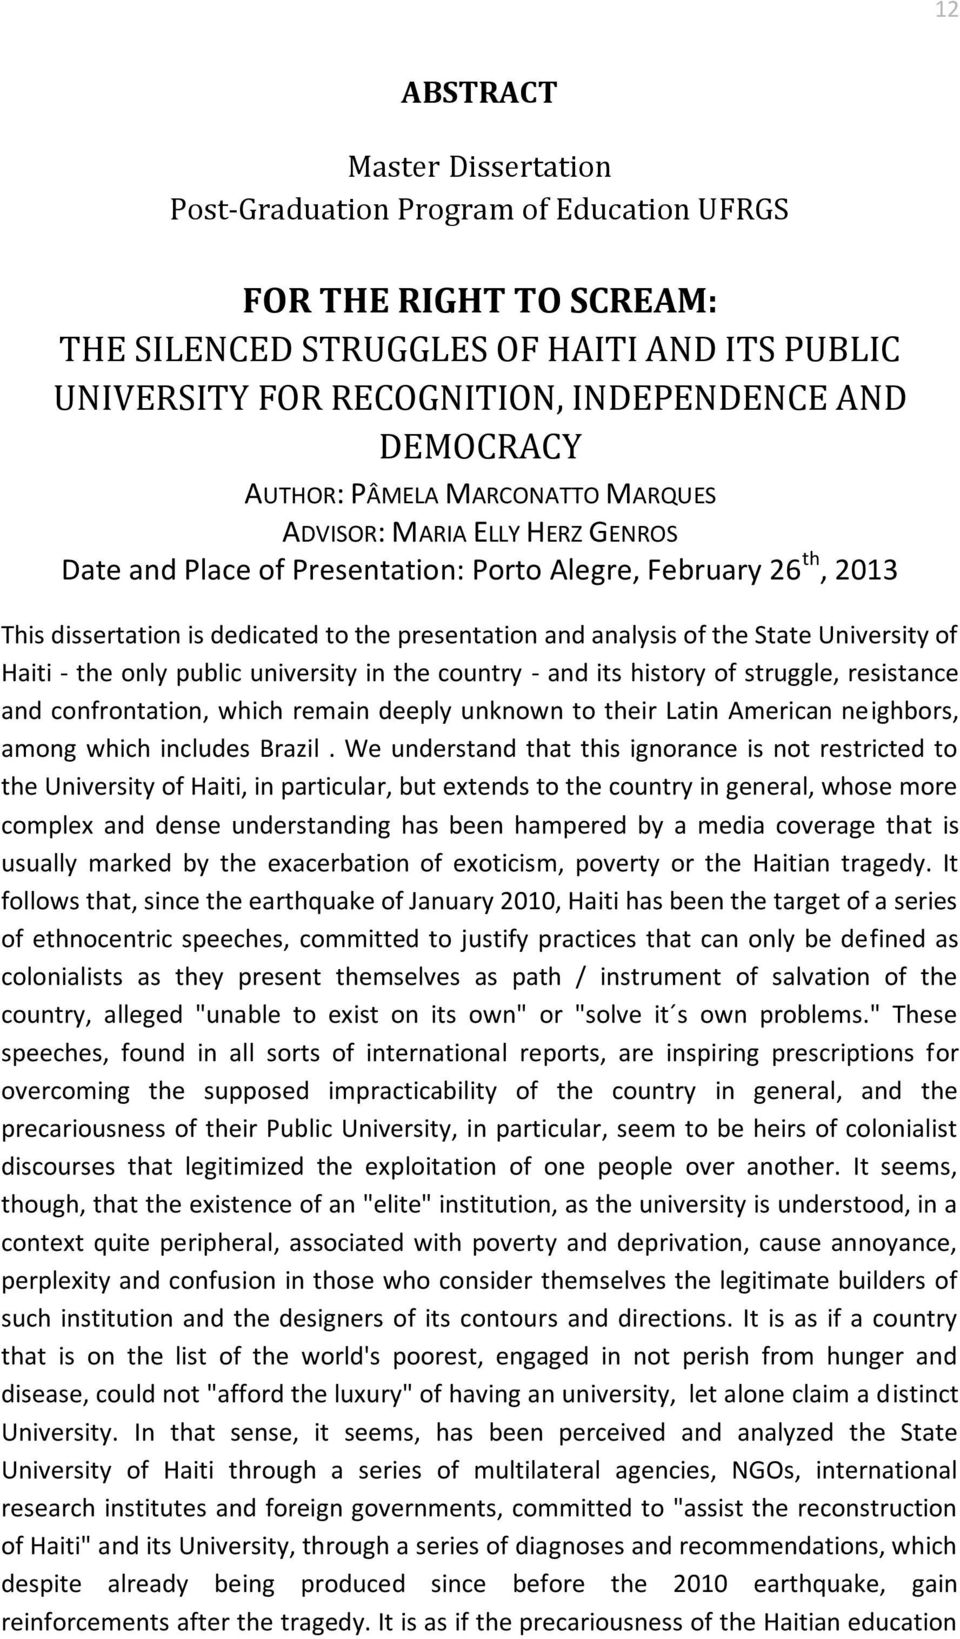 analysis of the State University of Haiti - the only public university in the country - and its history of struggle, resistance and confrontation, which remain deeply unknown to their Latin American